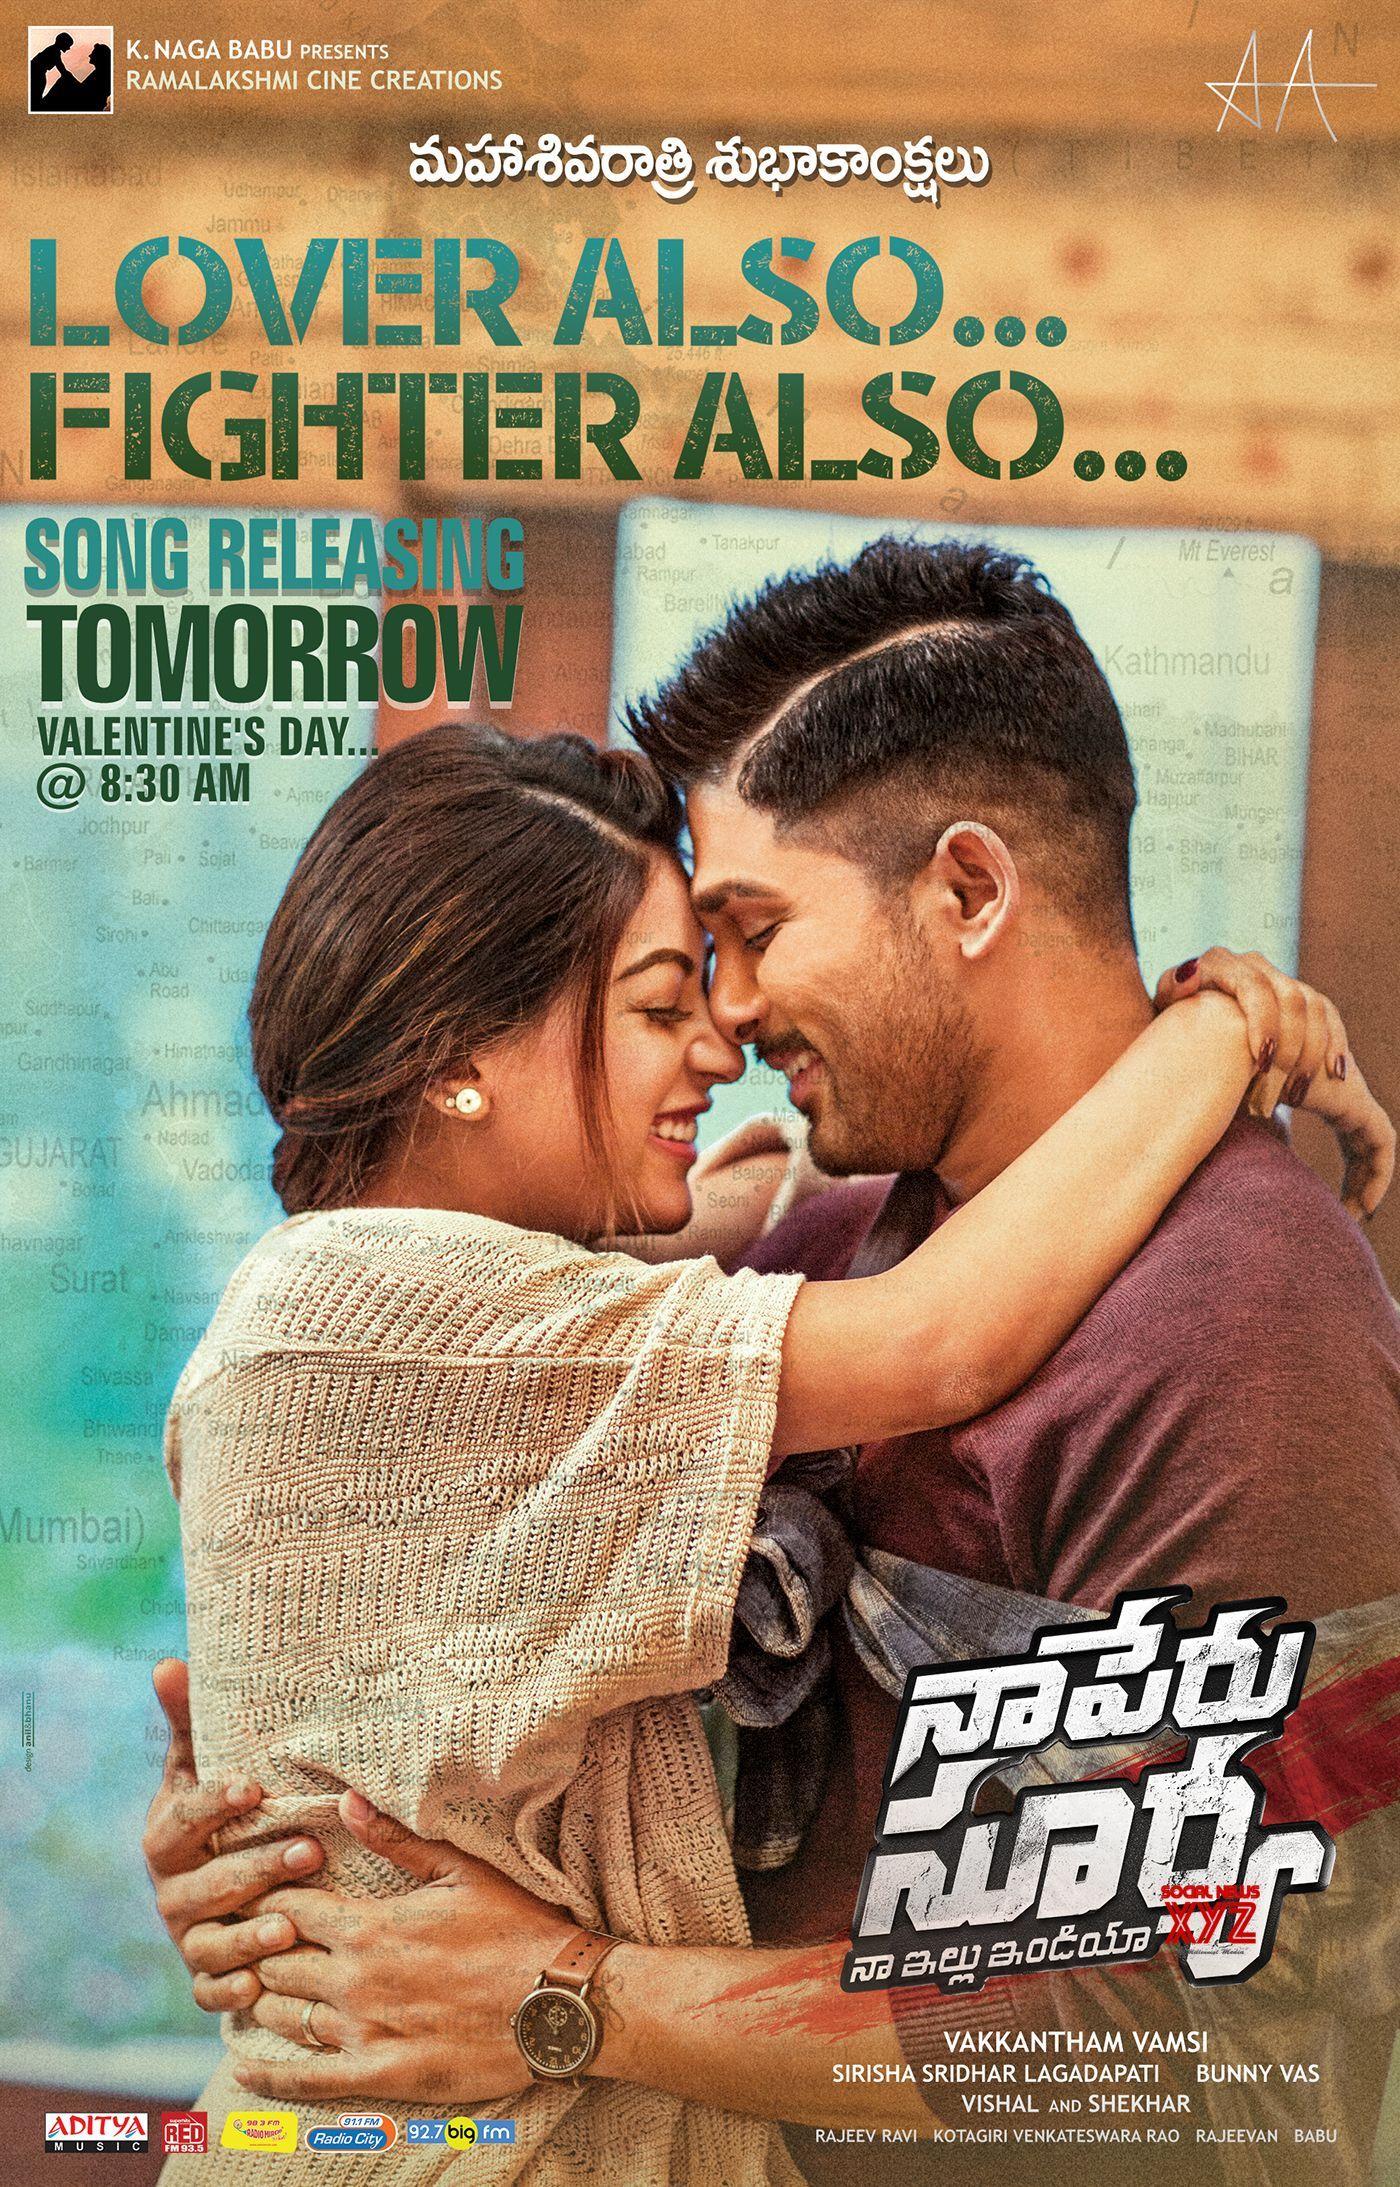 The new film songs video download in telugu naa